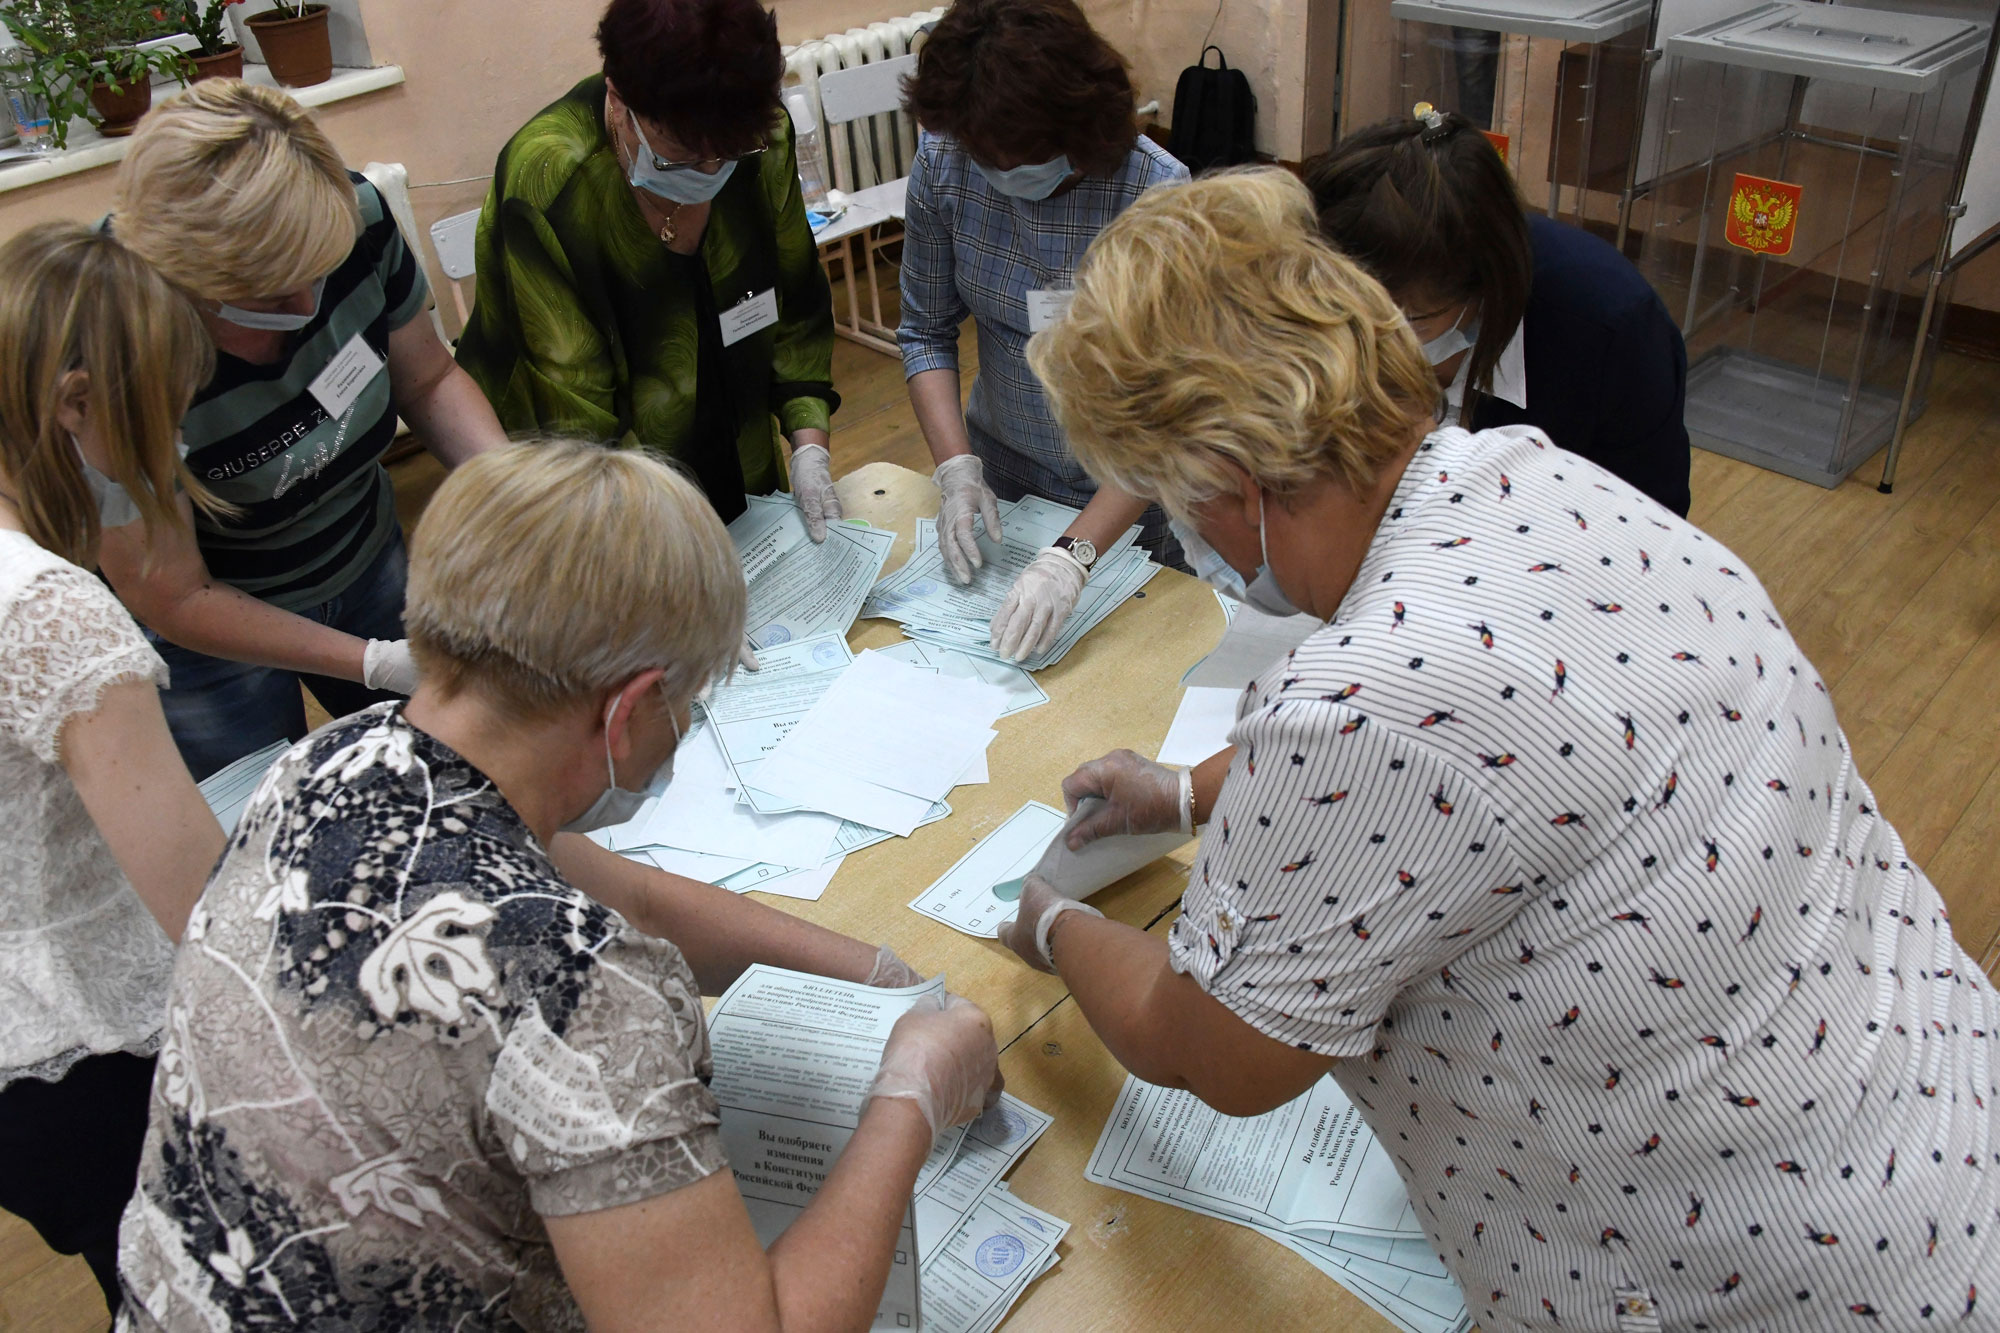 Members of an election commission count ballots after voting finished at a polling station in the eastern Siberian city of Chita, Russia, on July 1.